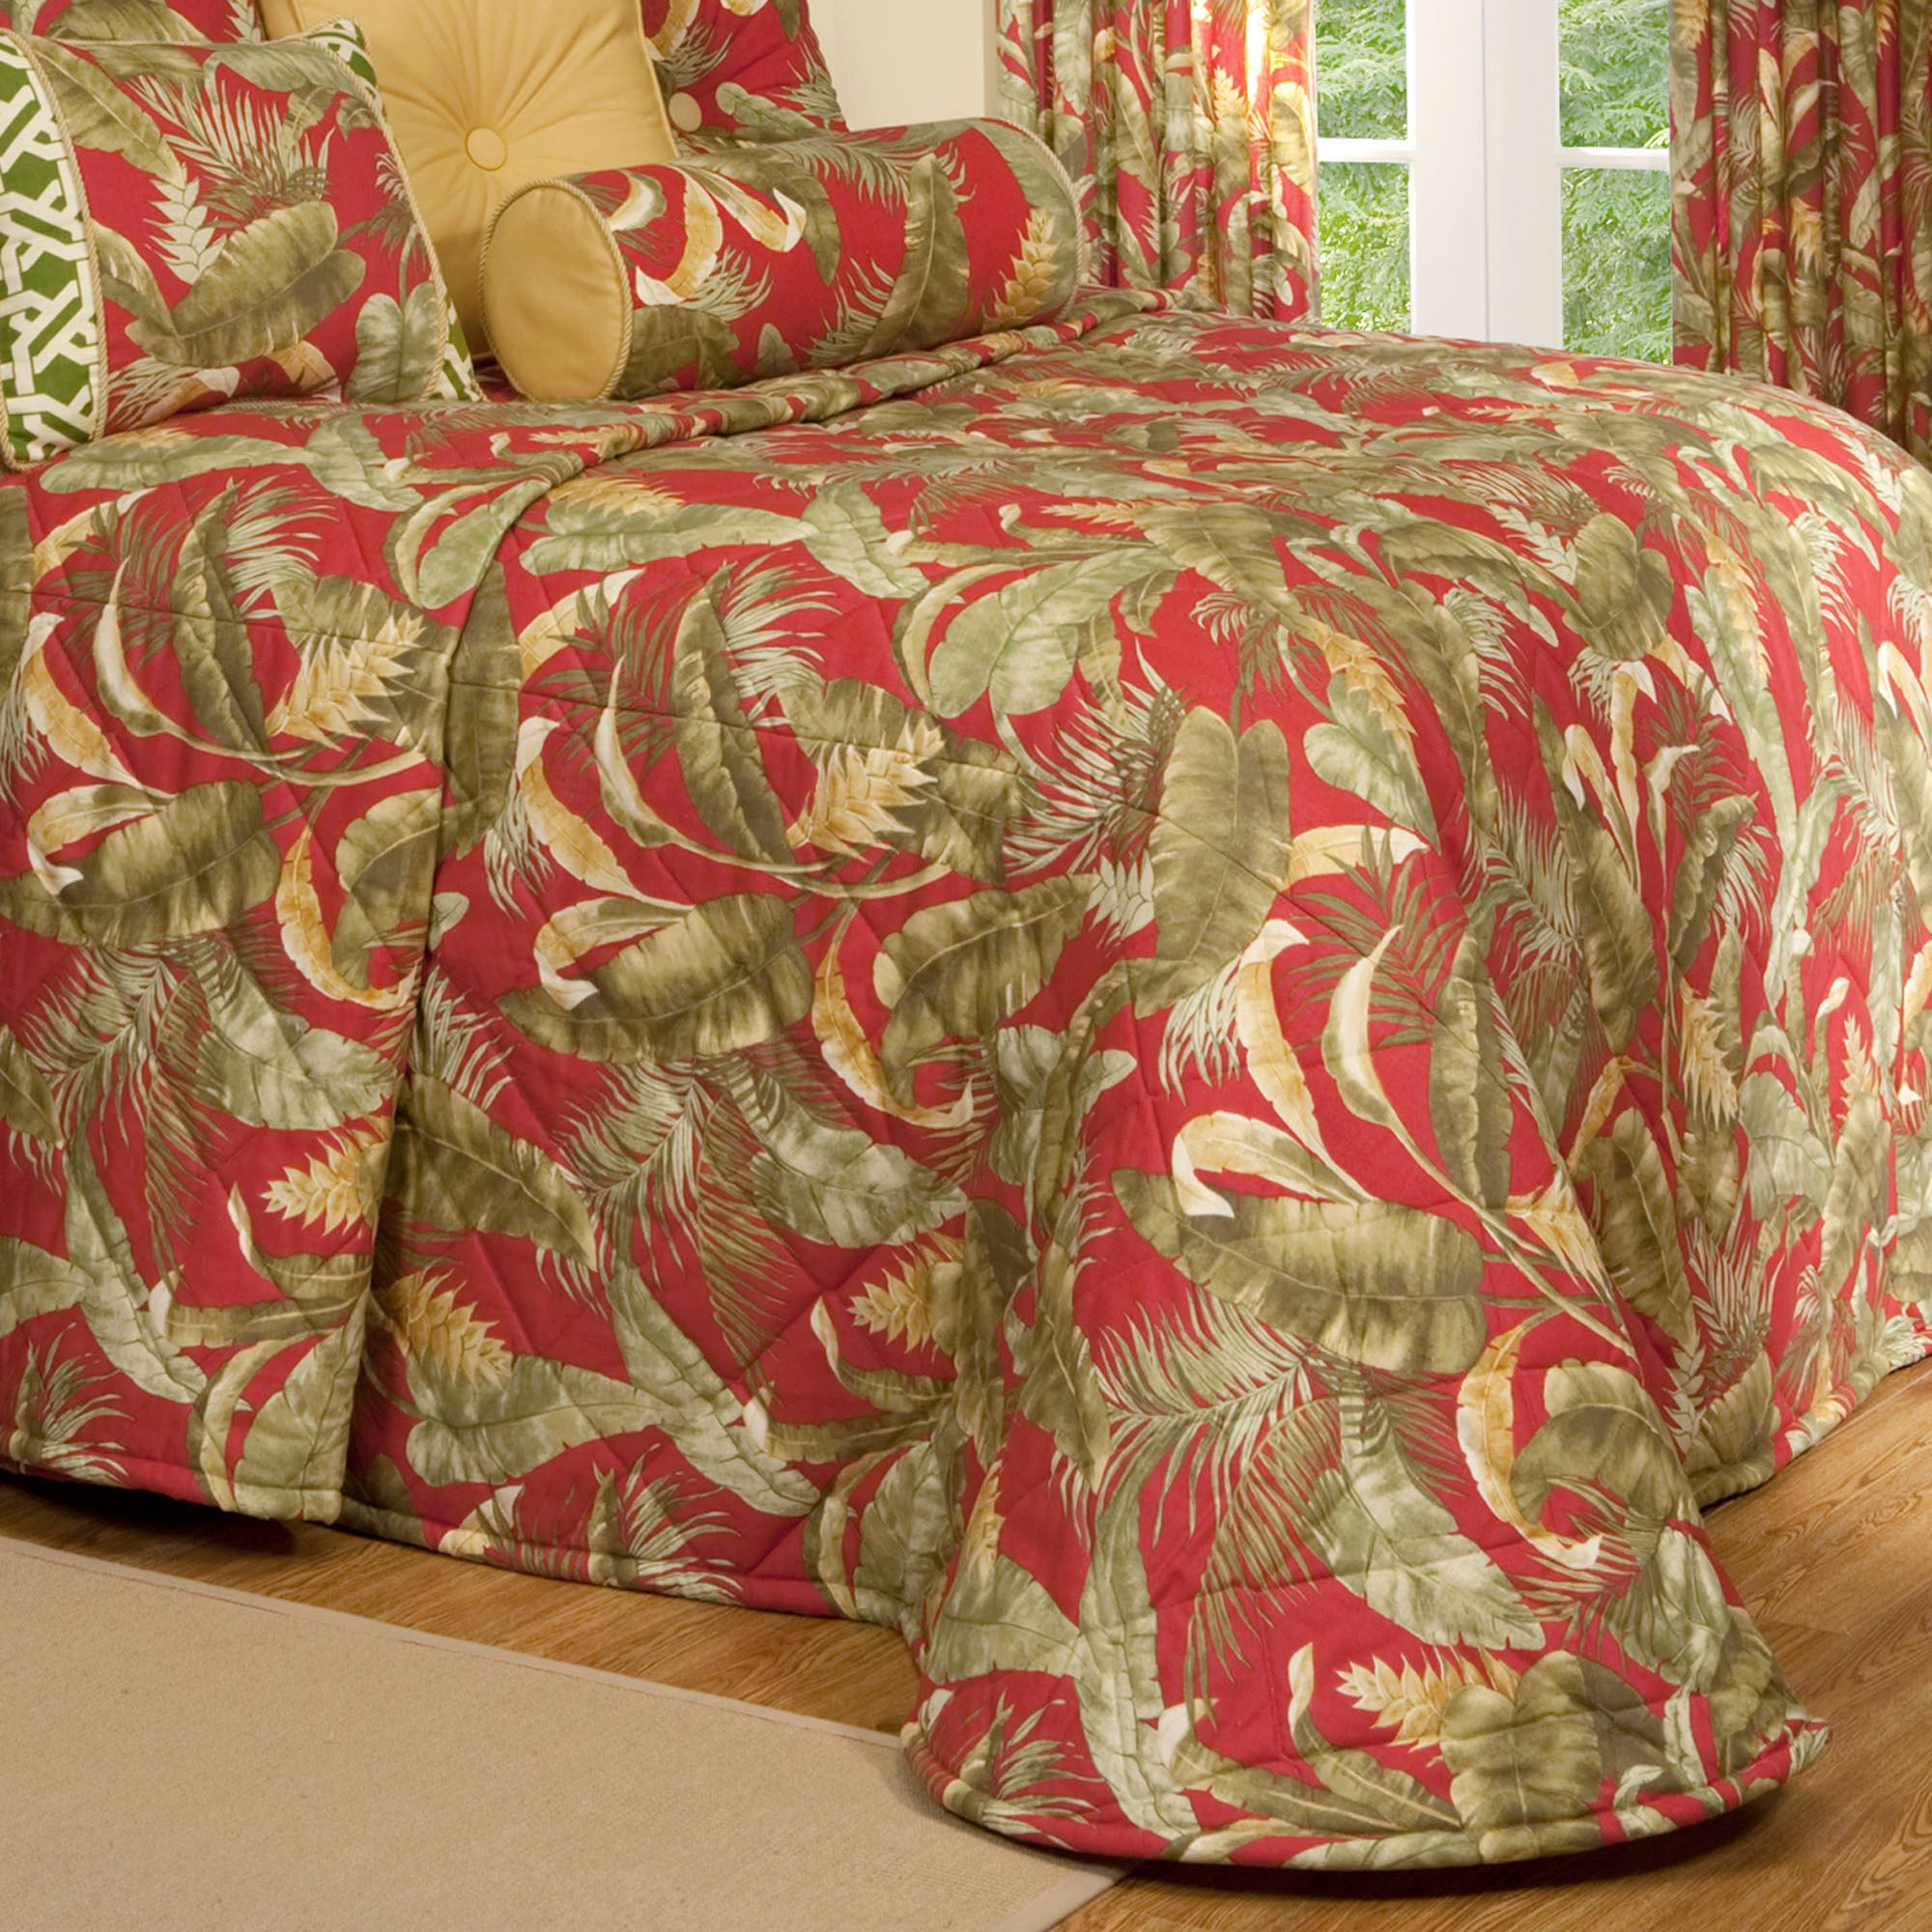 Captiva Dark Red Tropical Quilted Bedspread : red quilted bedspreads - Adamdwight.com